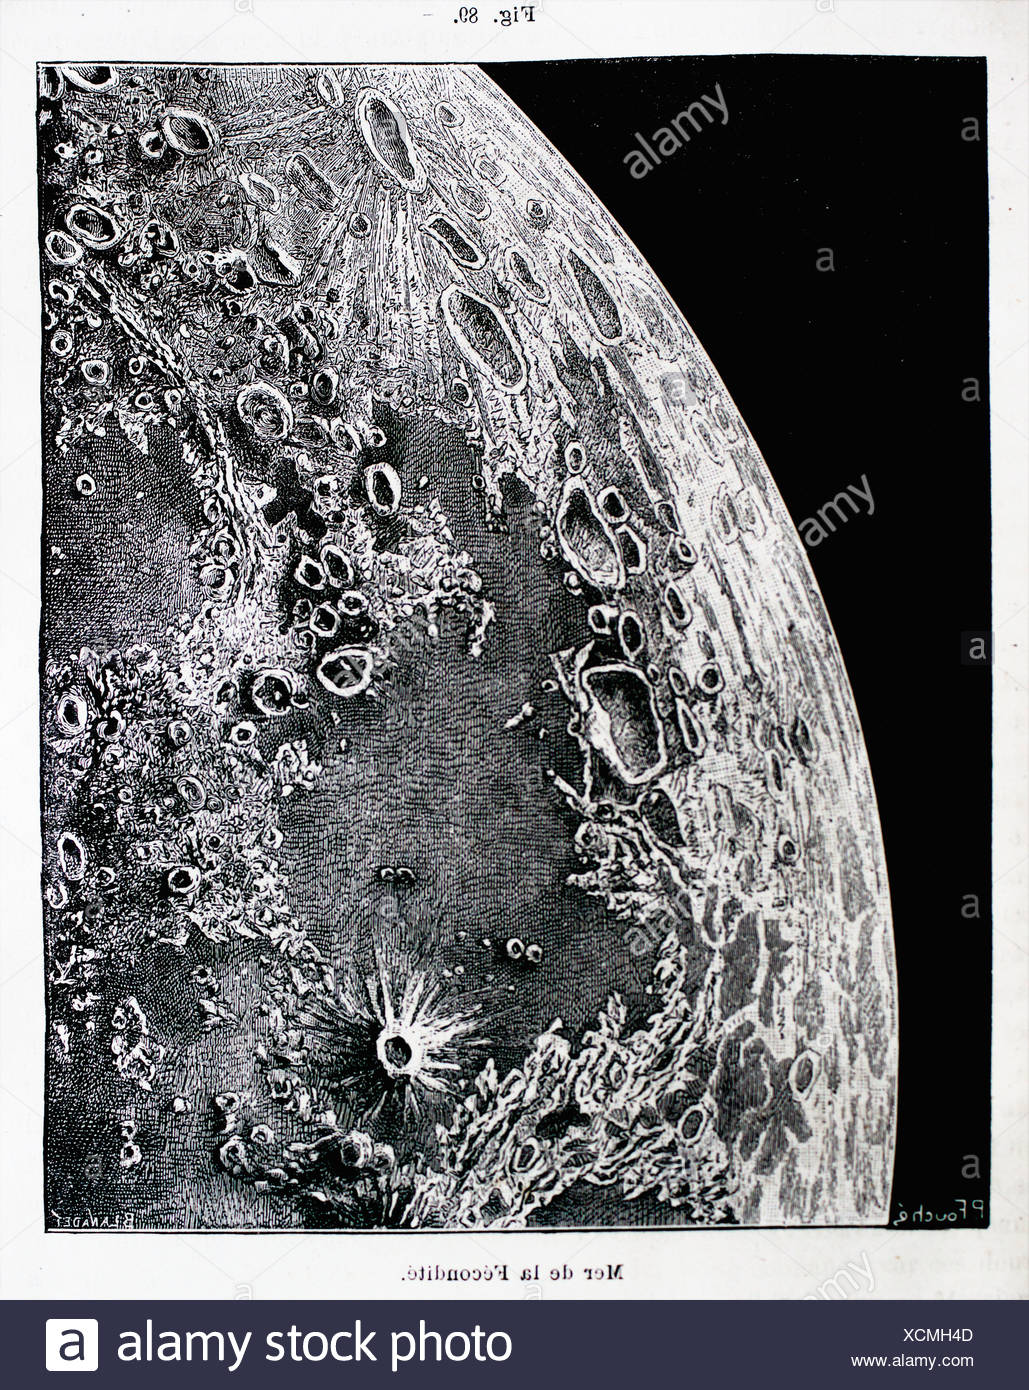 Lunar geography: Sea of Fecundity, ´L´Astronomie´ journal by Camille Flammarion, 1883 - Stock Image